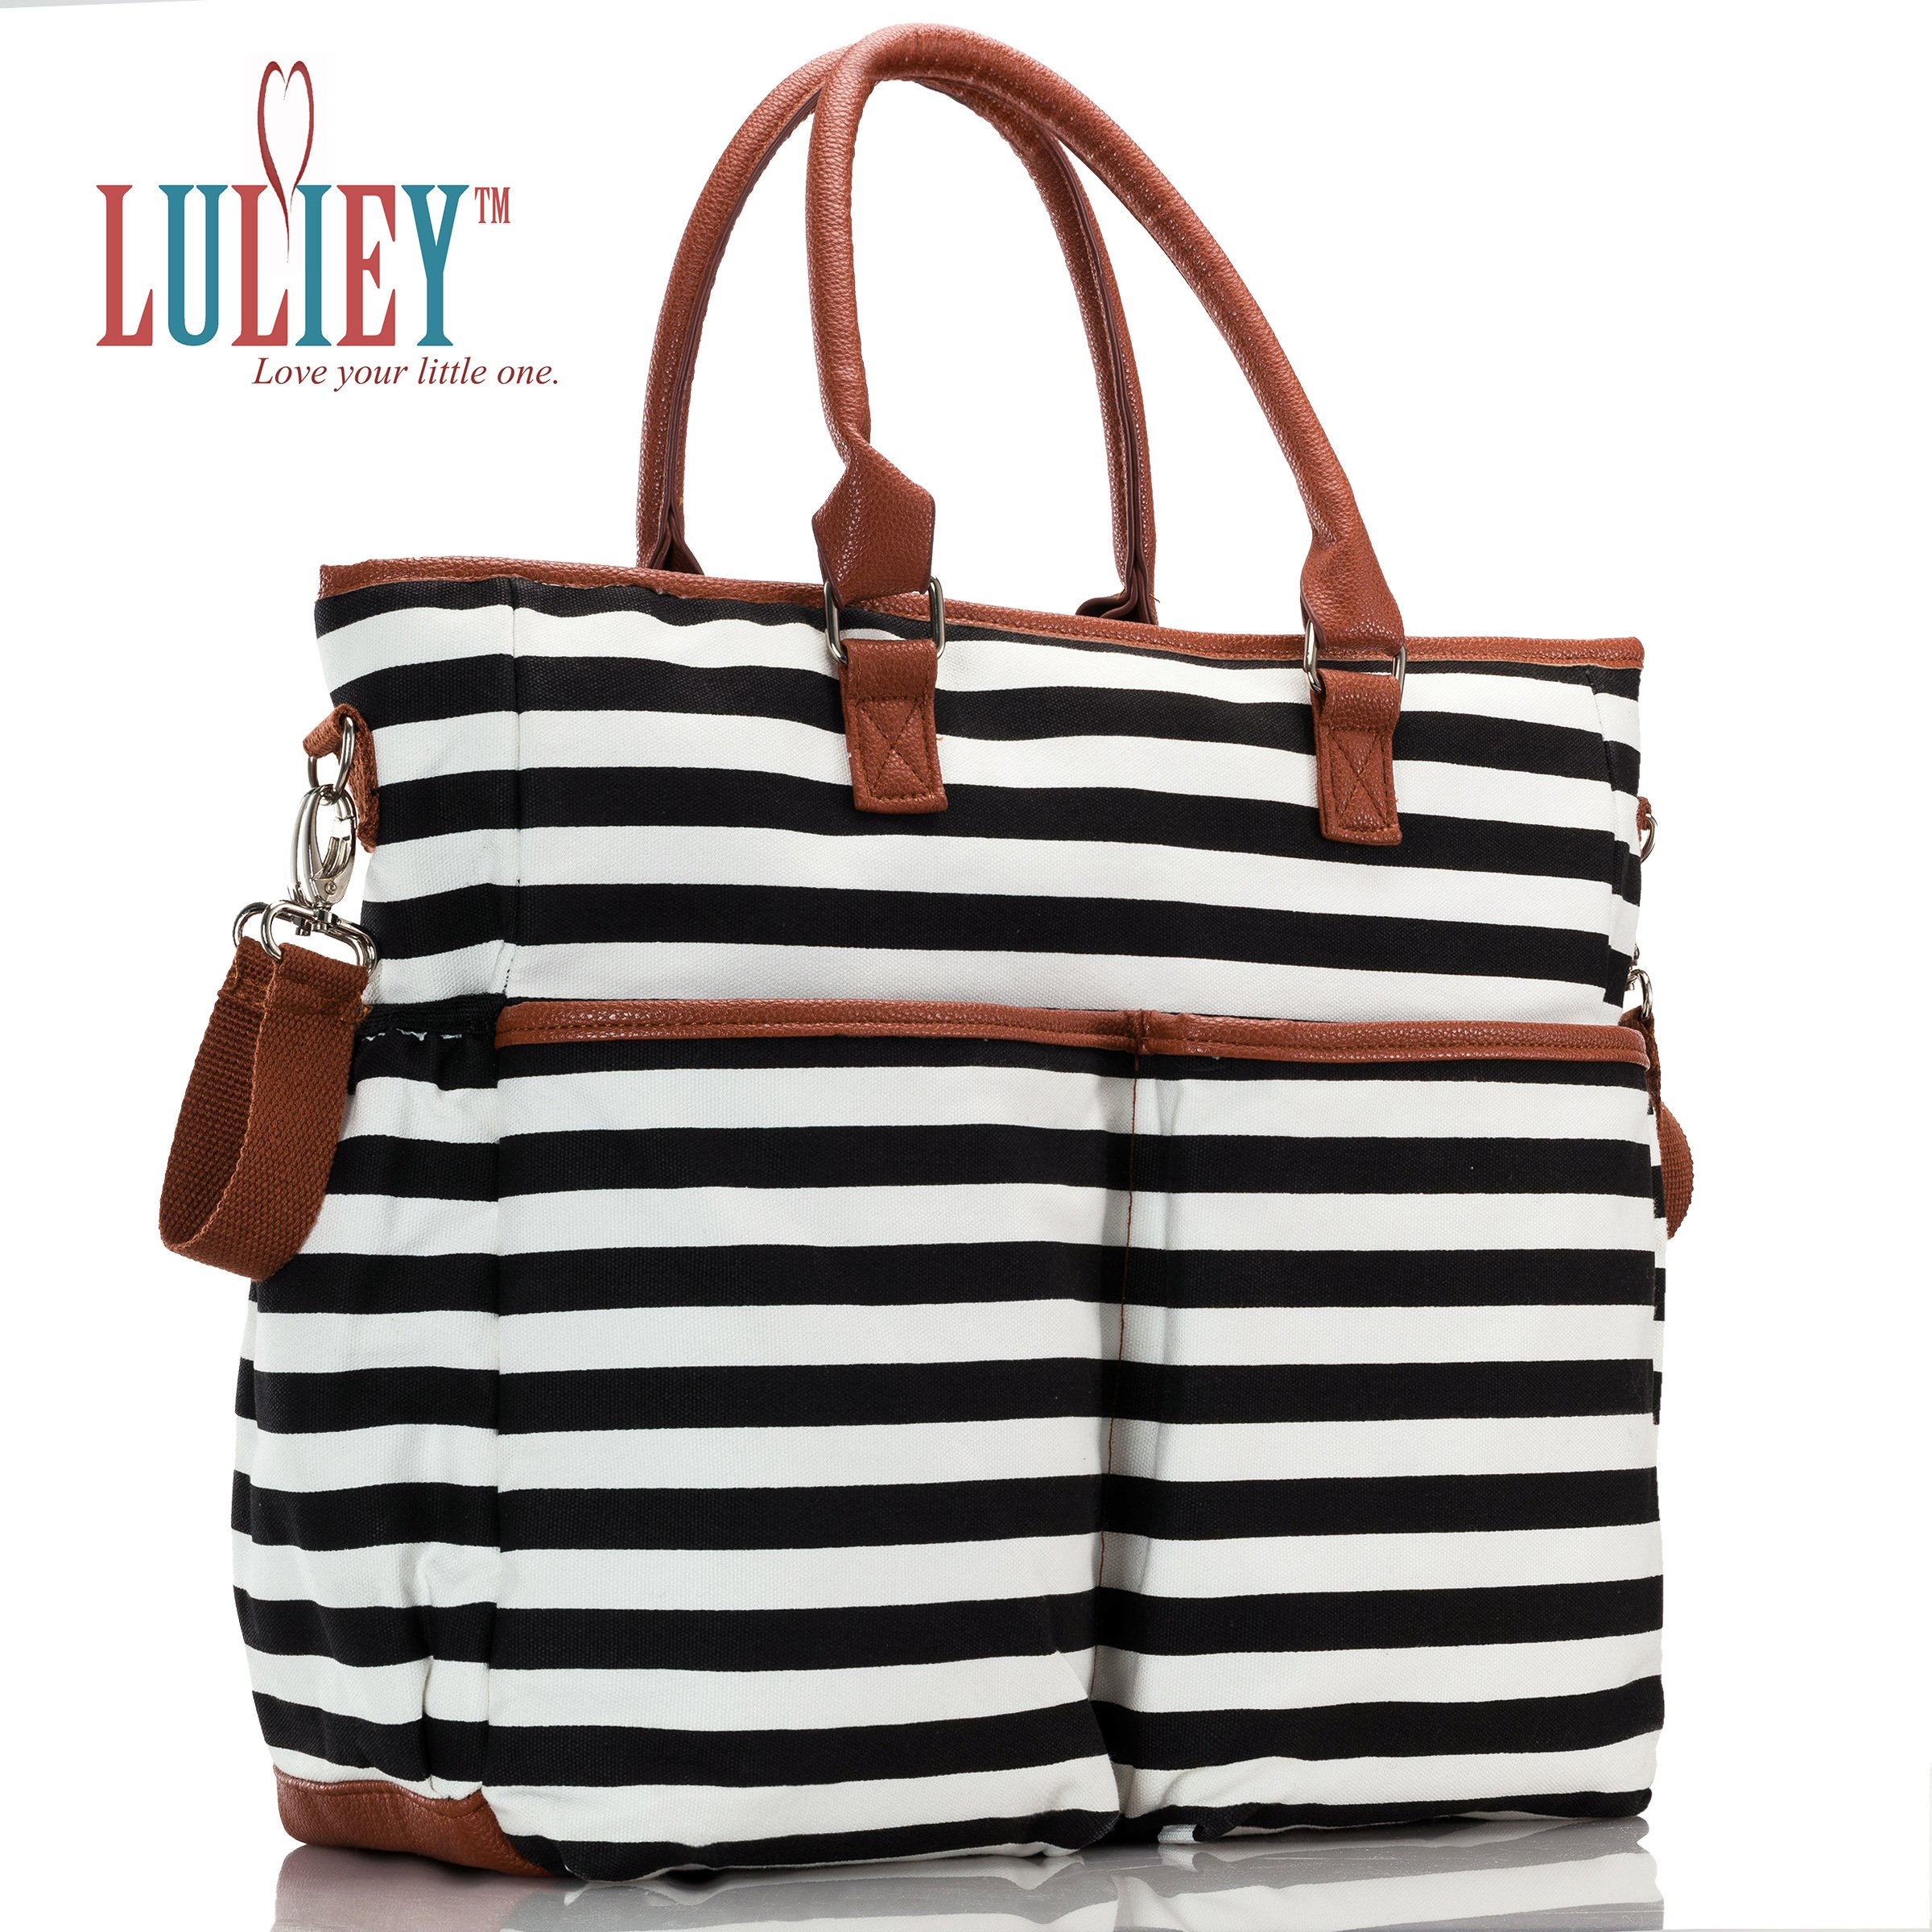 Premium Baby Diaper Tote Bag + Matching Changing Pad and Stroller Strap – 14 Spacious Pockets – Durable Canvas Material – Black and White Stripes with Tan Leather Trim – Lightweight - 14'' x 5'' x 15'' by Luliey (Image #1)